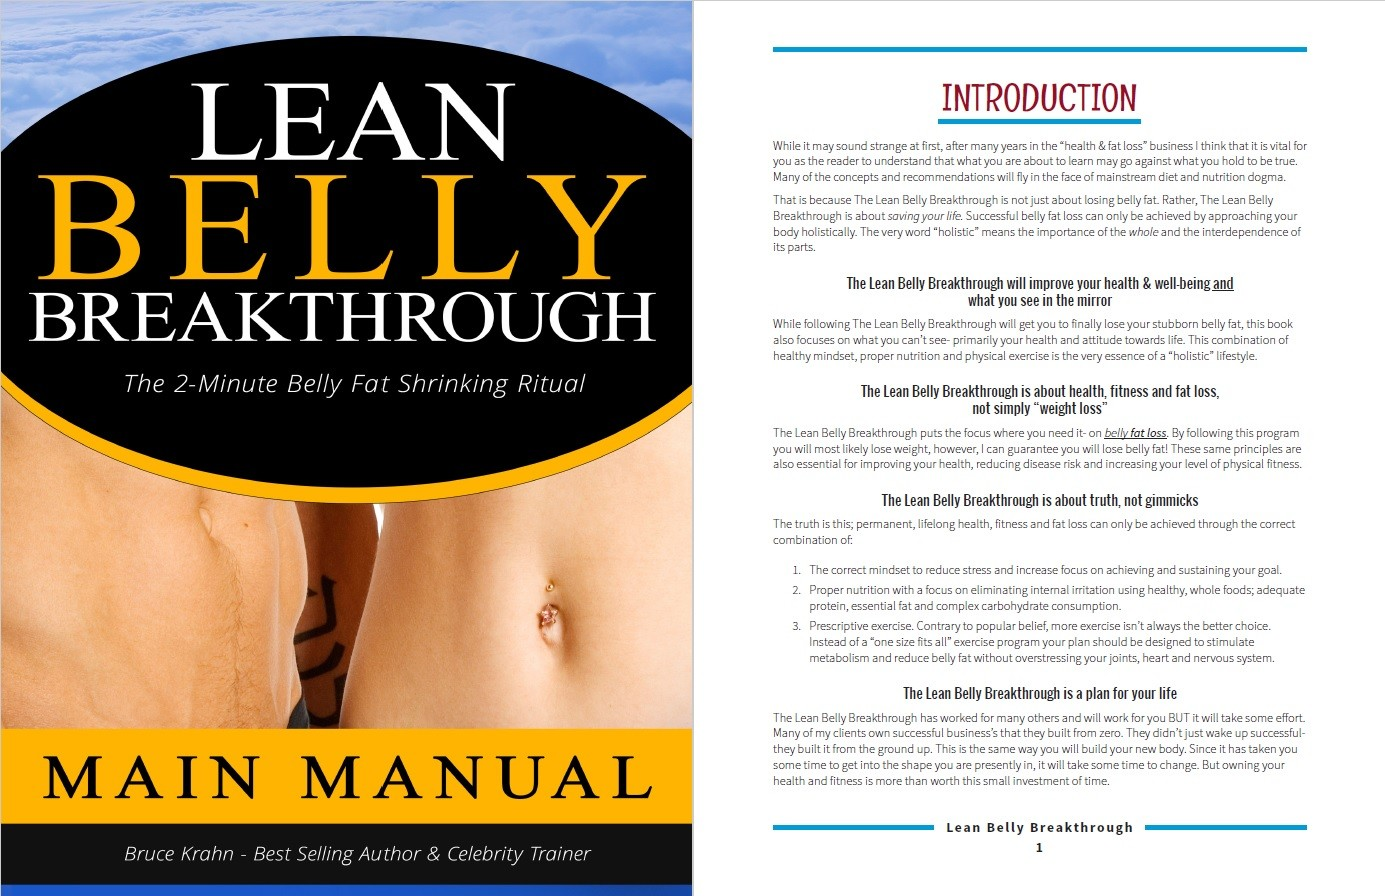 Lean Belly Breakthrough's Table of Contents